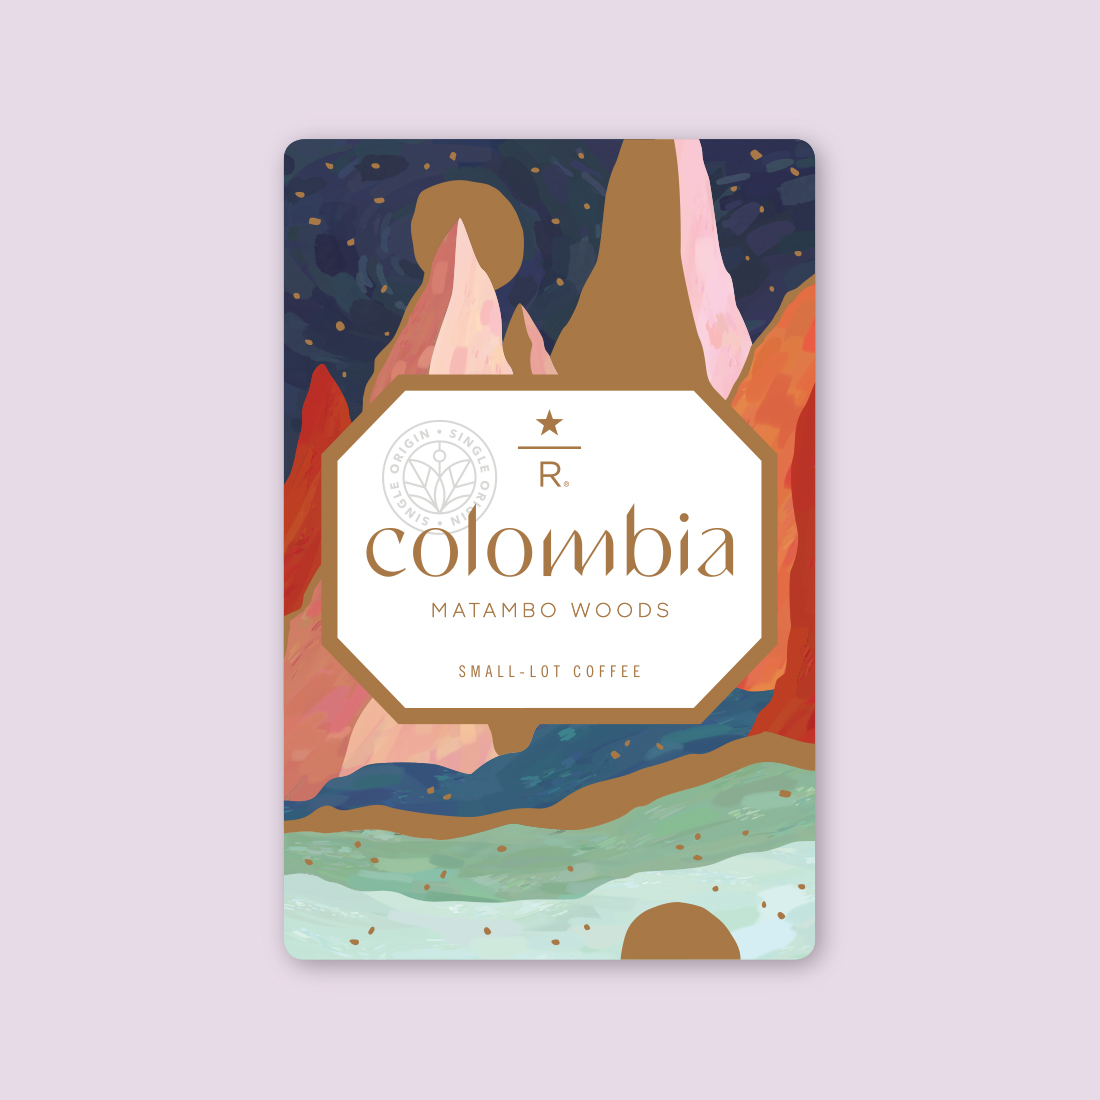 Coffee card illustration for COLOMBIA MATAMBO WOODS